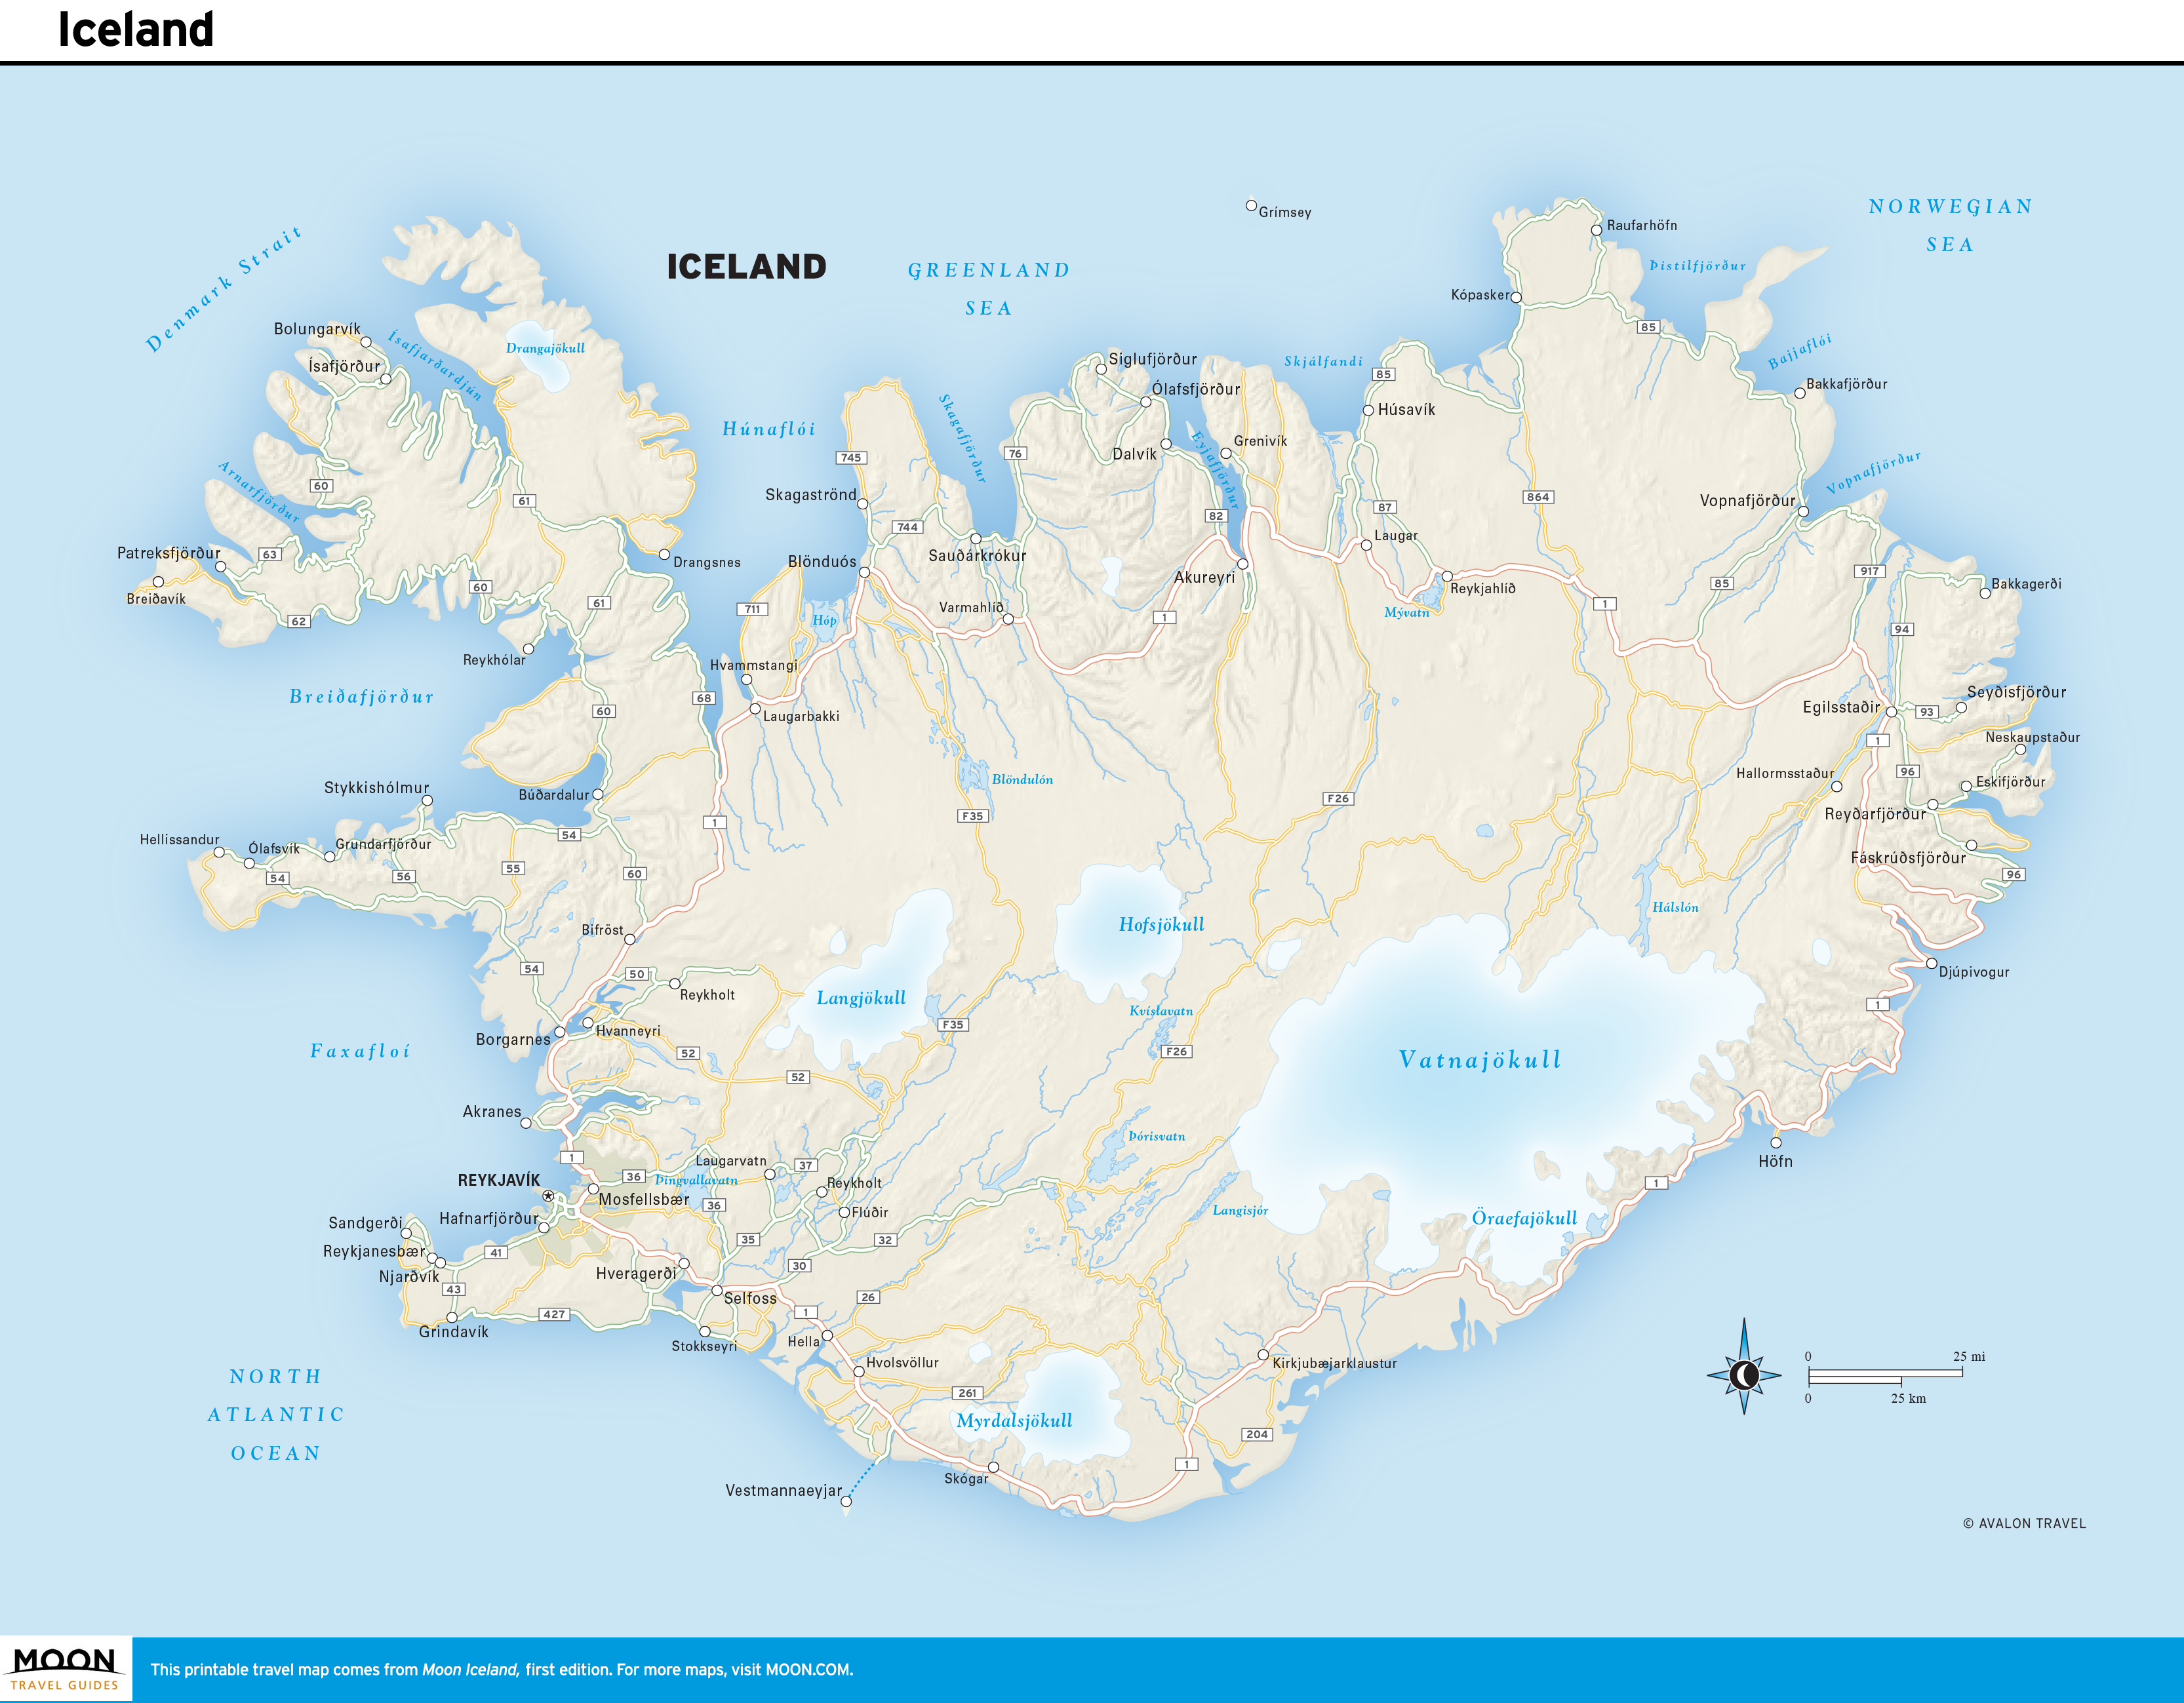 Iceland | Moon Travel Guides on golden circle reykjavik map, confederate states of america map, iceland black population, iceland ring road length, iceland scenery, iceland points of interest maps, pacific coast highway 1 california map, iceland road trip, iceland scenic views, iceland ring road bridge, iceland tourism, iceland daylight chart, iceland f roads, iceland tours, reykjavik tourist map, greenland road map, iceland itinerary, iceland stocks, west iceland road map, western canada map,